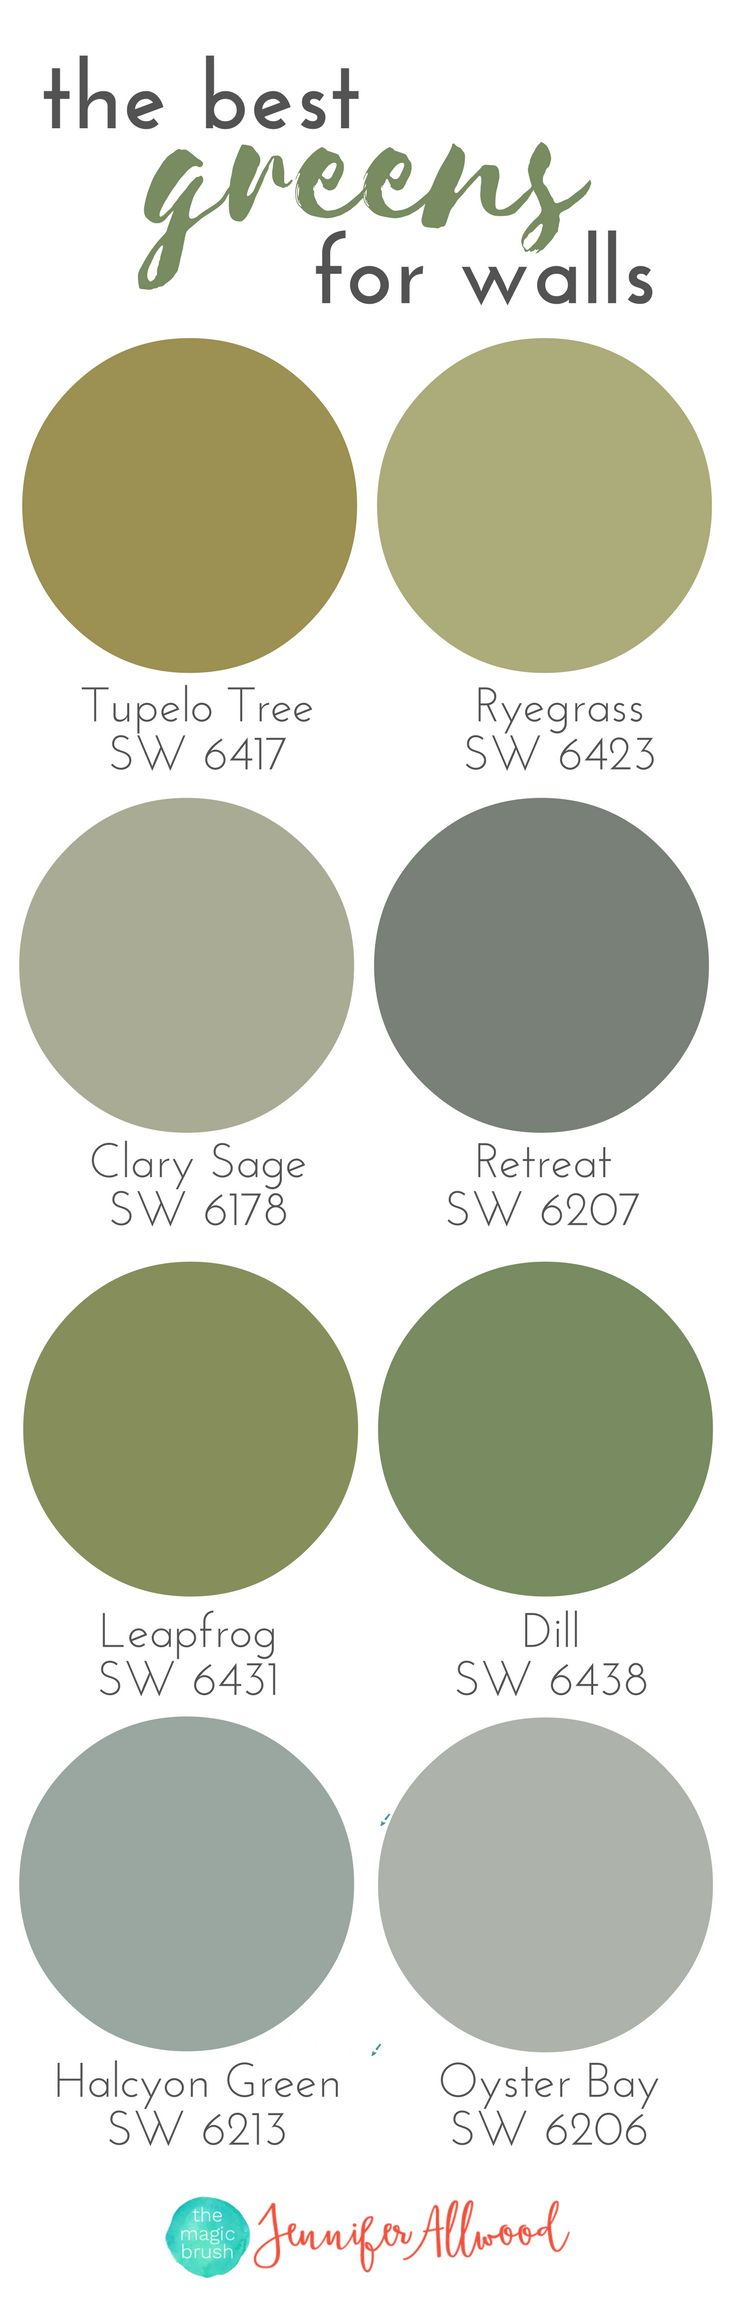 791 best home - paint color images on Pinterest | Color palettes ...